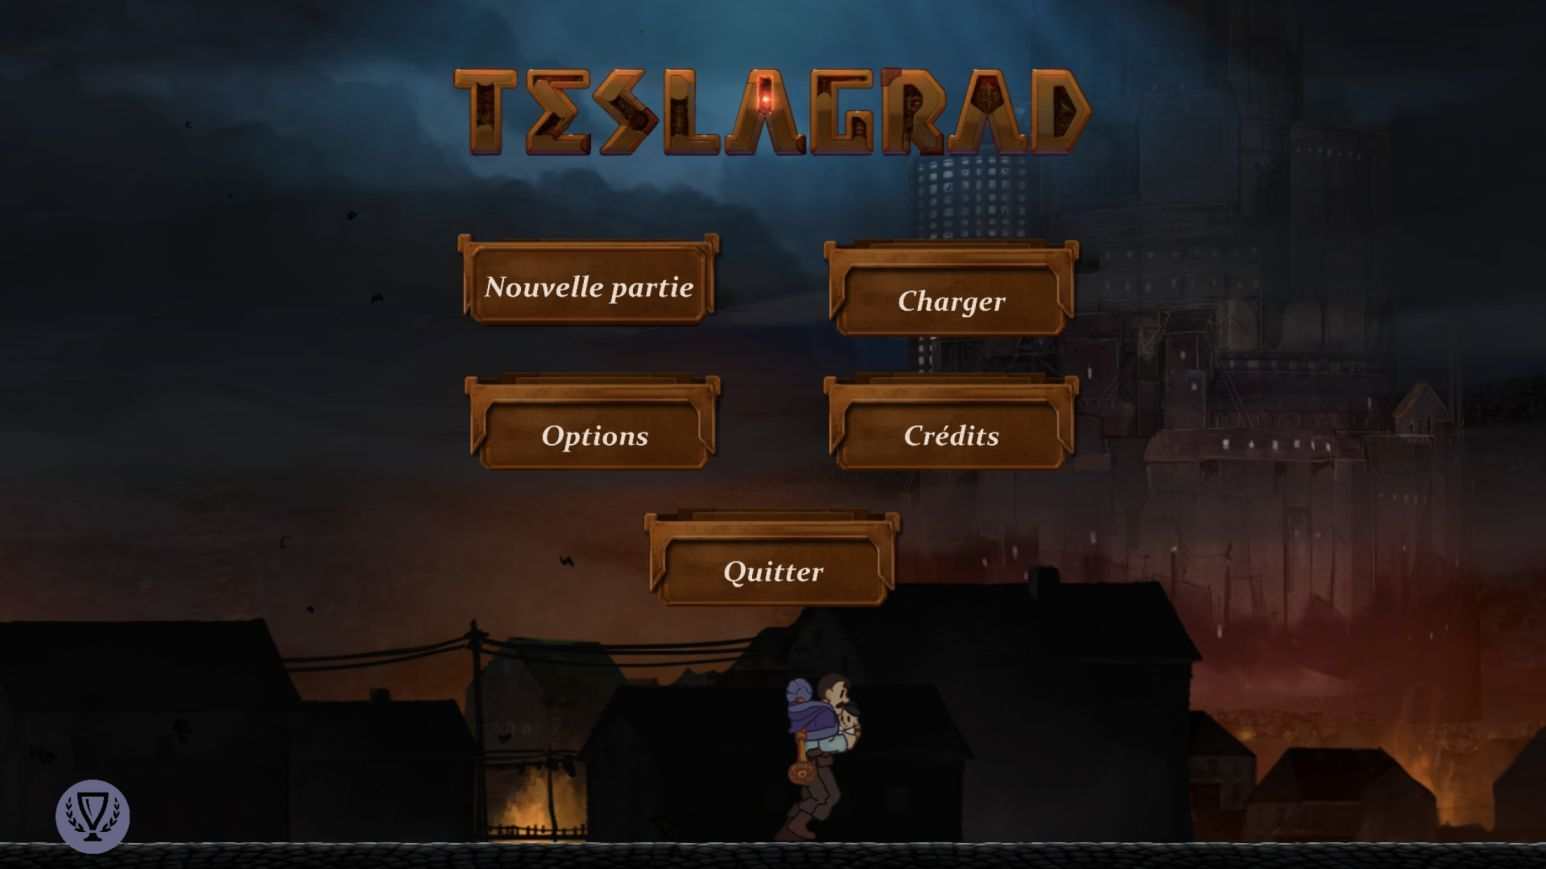 Teslagrad (copie d'écran 1 sur iPhone / iPad)